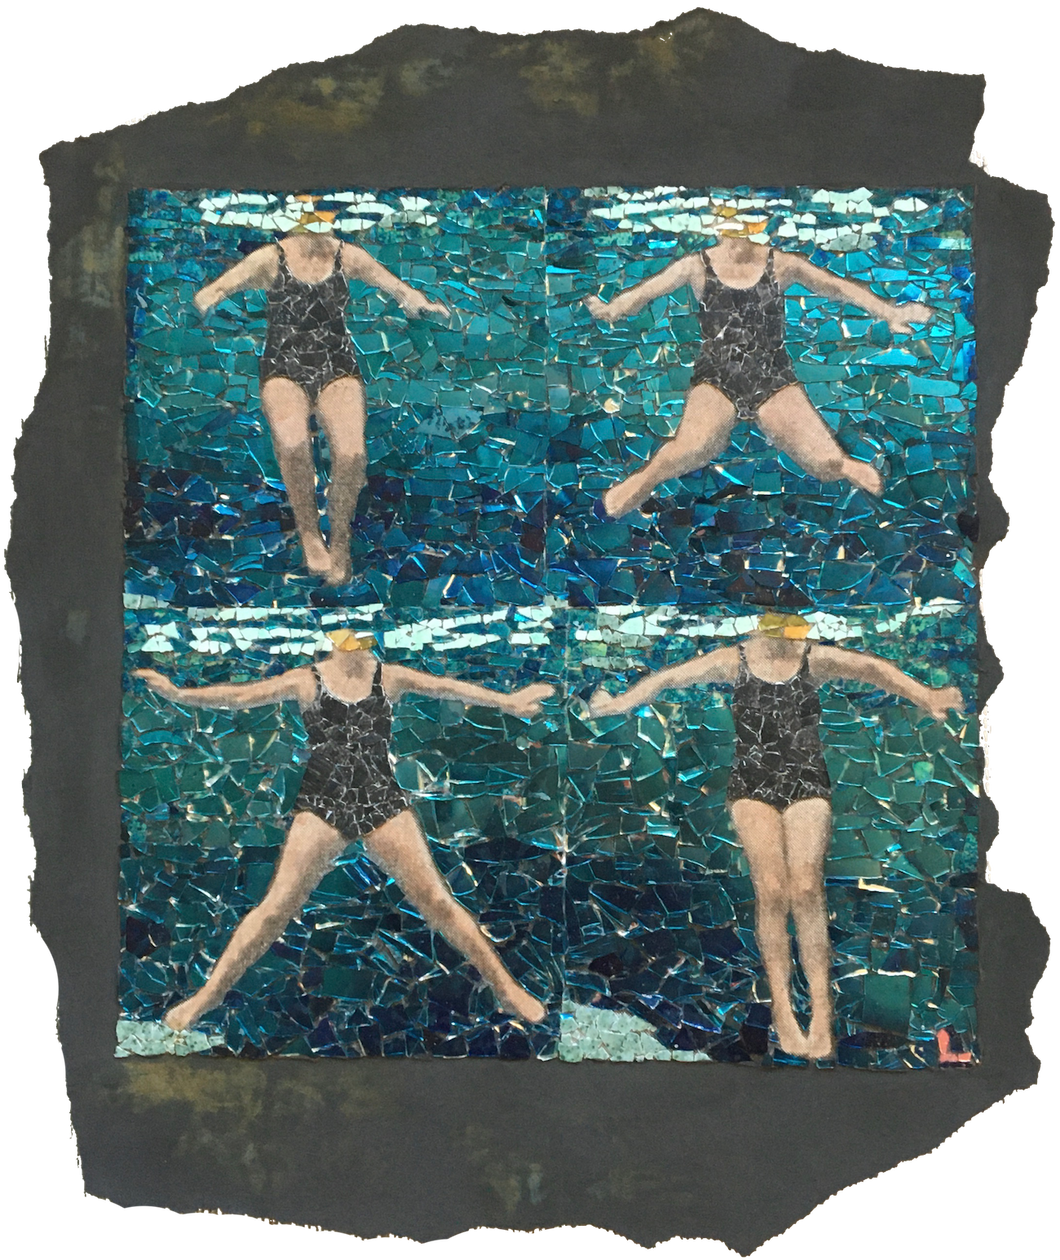 Fig.40. Treading water using breast stroke kick.